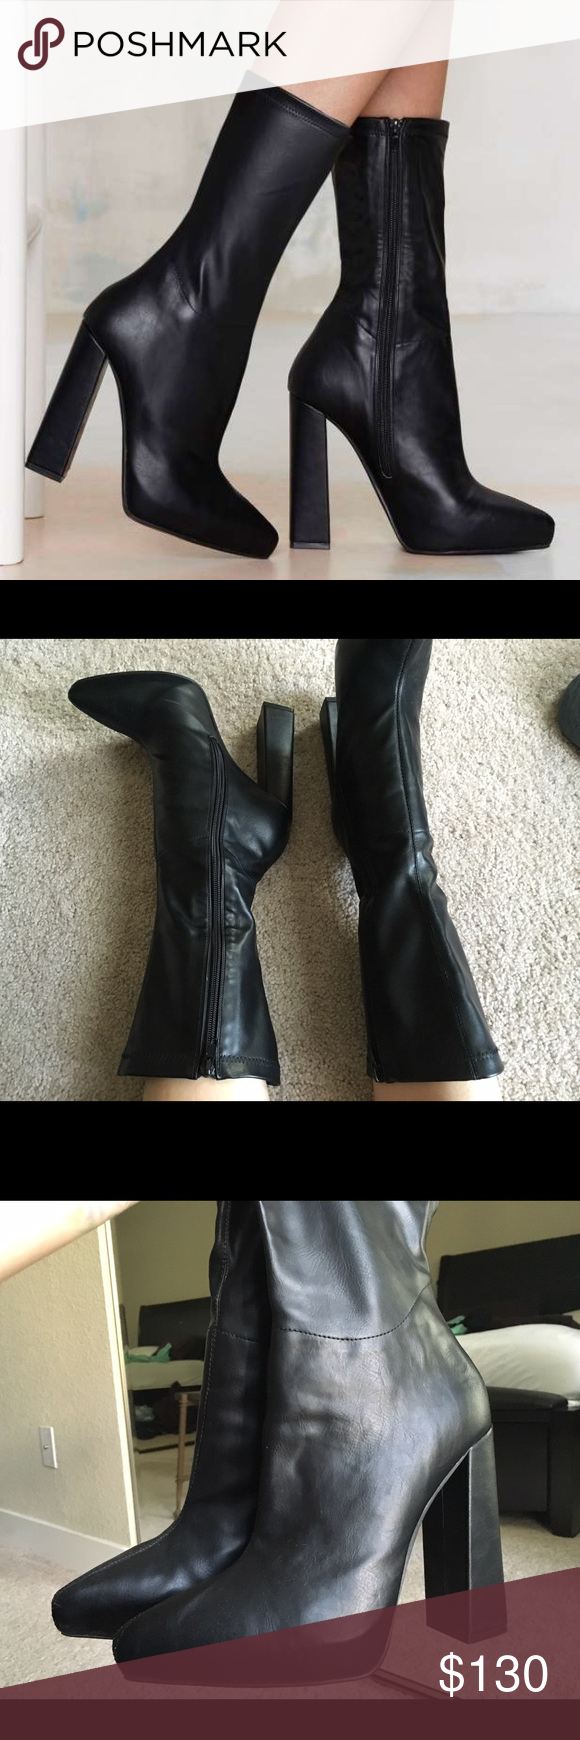 c6ac23eb0fca Jeffrey Campbell Isolate Platform Boot Like new condition. Worn once for a  Christmas party.